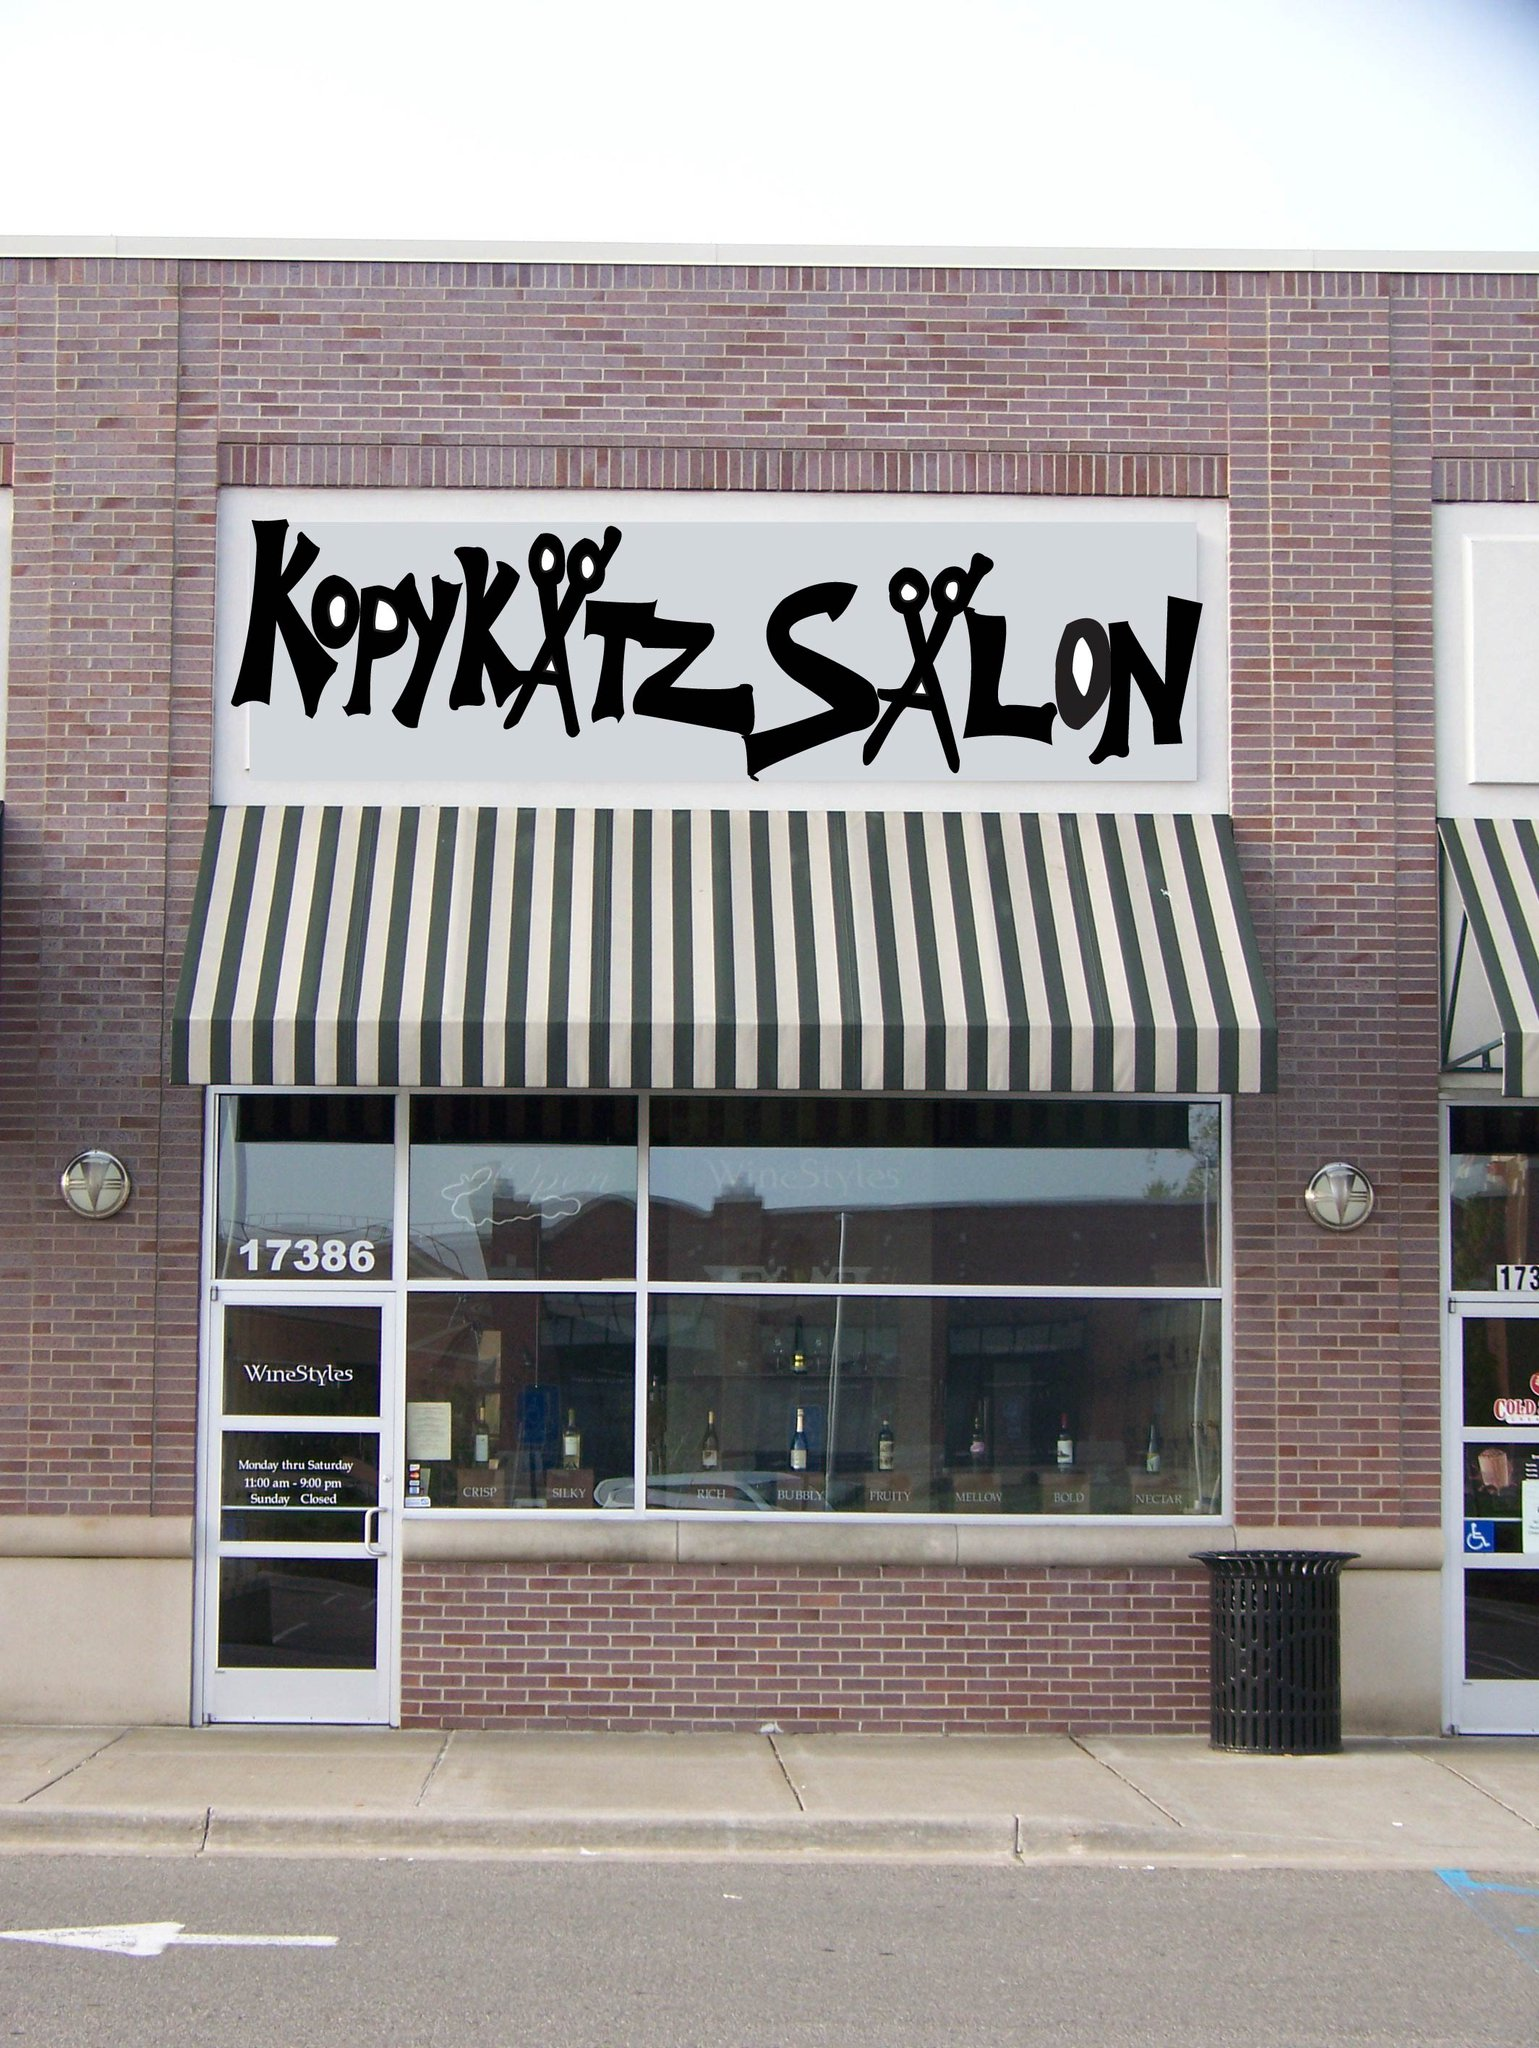 Kopy Katz has been in Berkley for 60 years. We have 10 hair stylists whose talents range from cutting and styling to perms, highlights, and NEW Keratin Straightener. Come in today for a free cut, color or chemical service consultation!